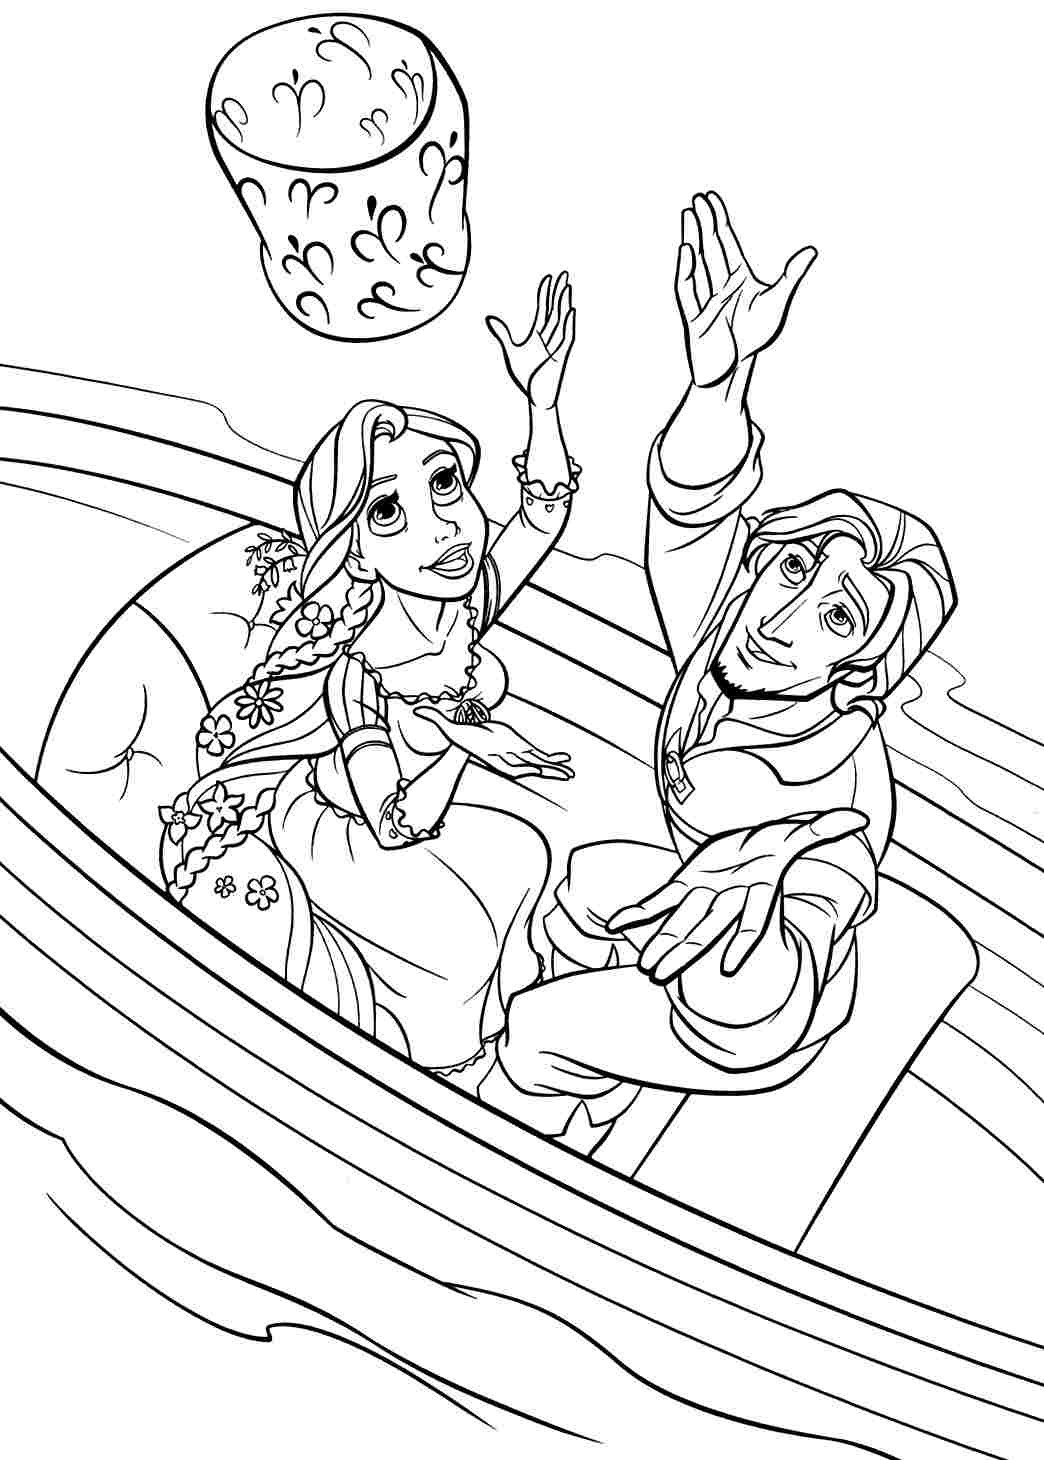 Tangled Coloring Pages For Girls  Rapunzel Coloring Page thekindproject